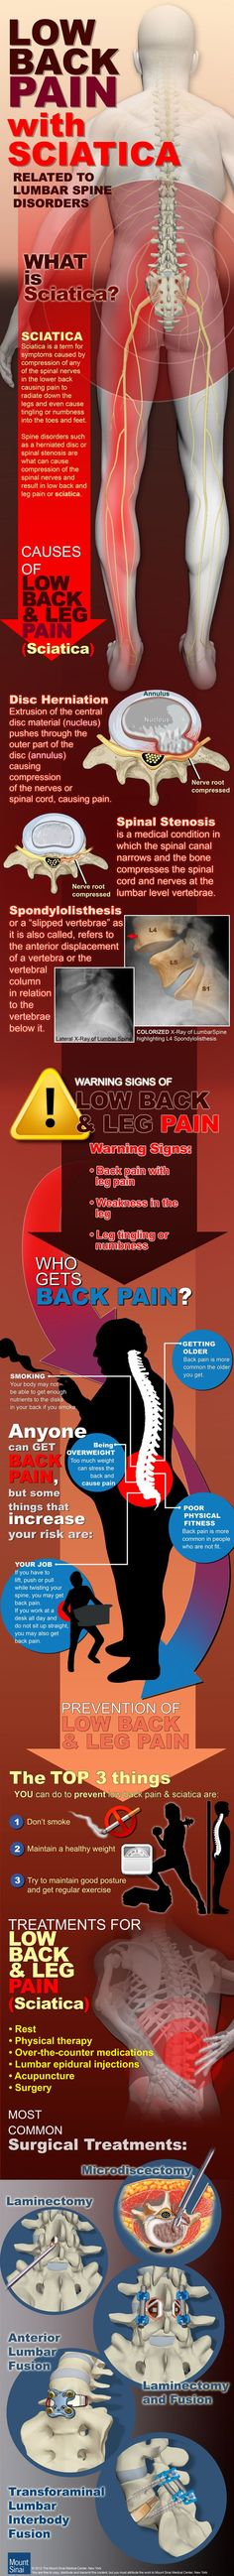 Low back pain with sciatica infographic from @MountSinaiNYC via @Pinterest